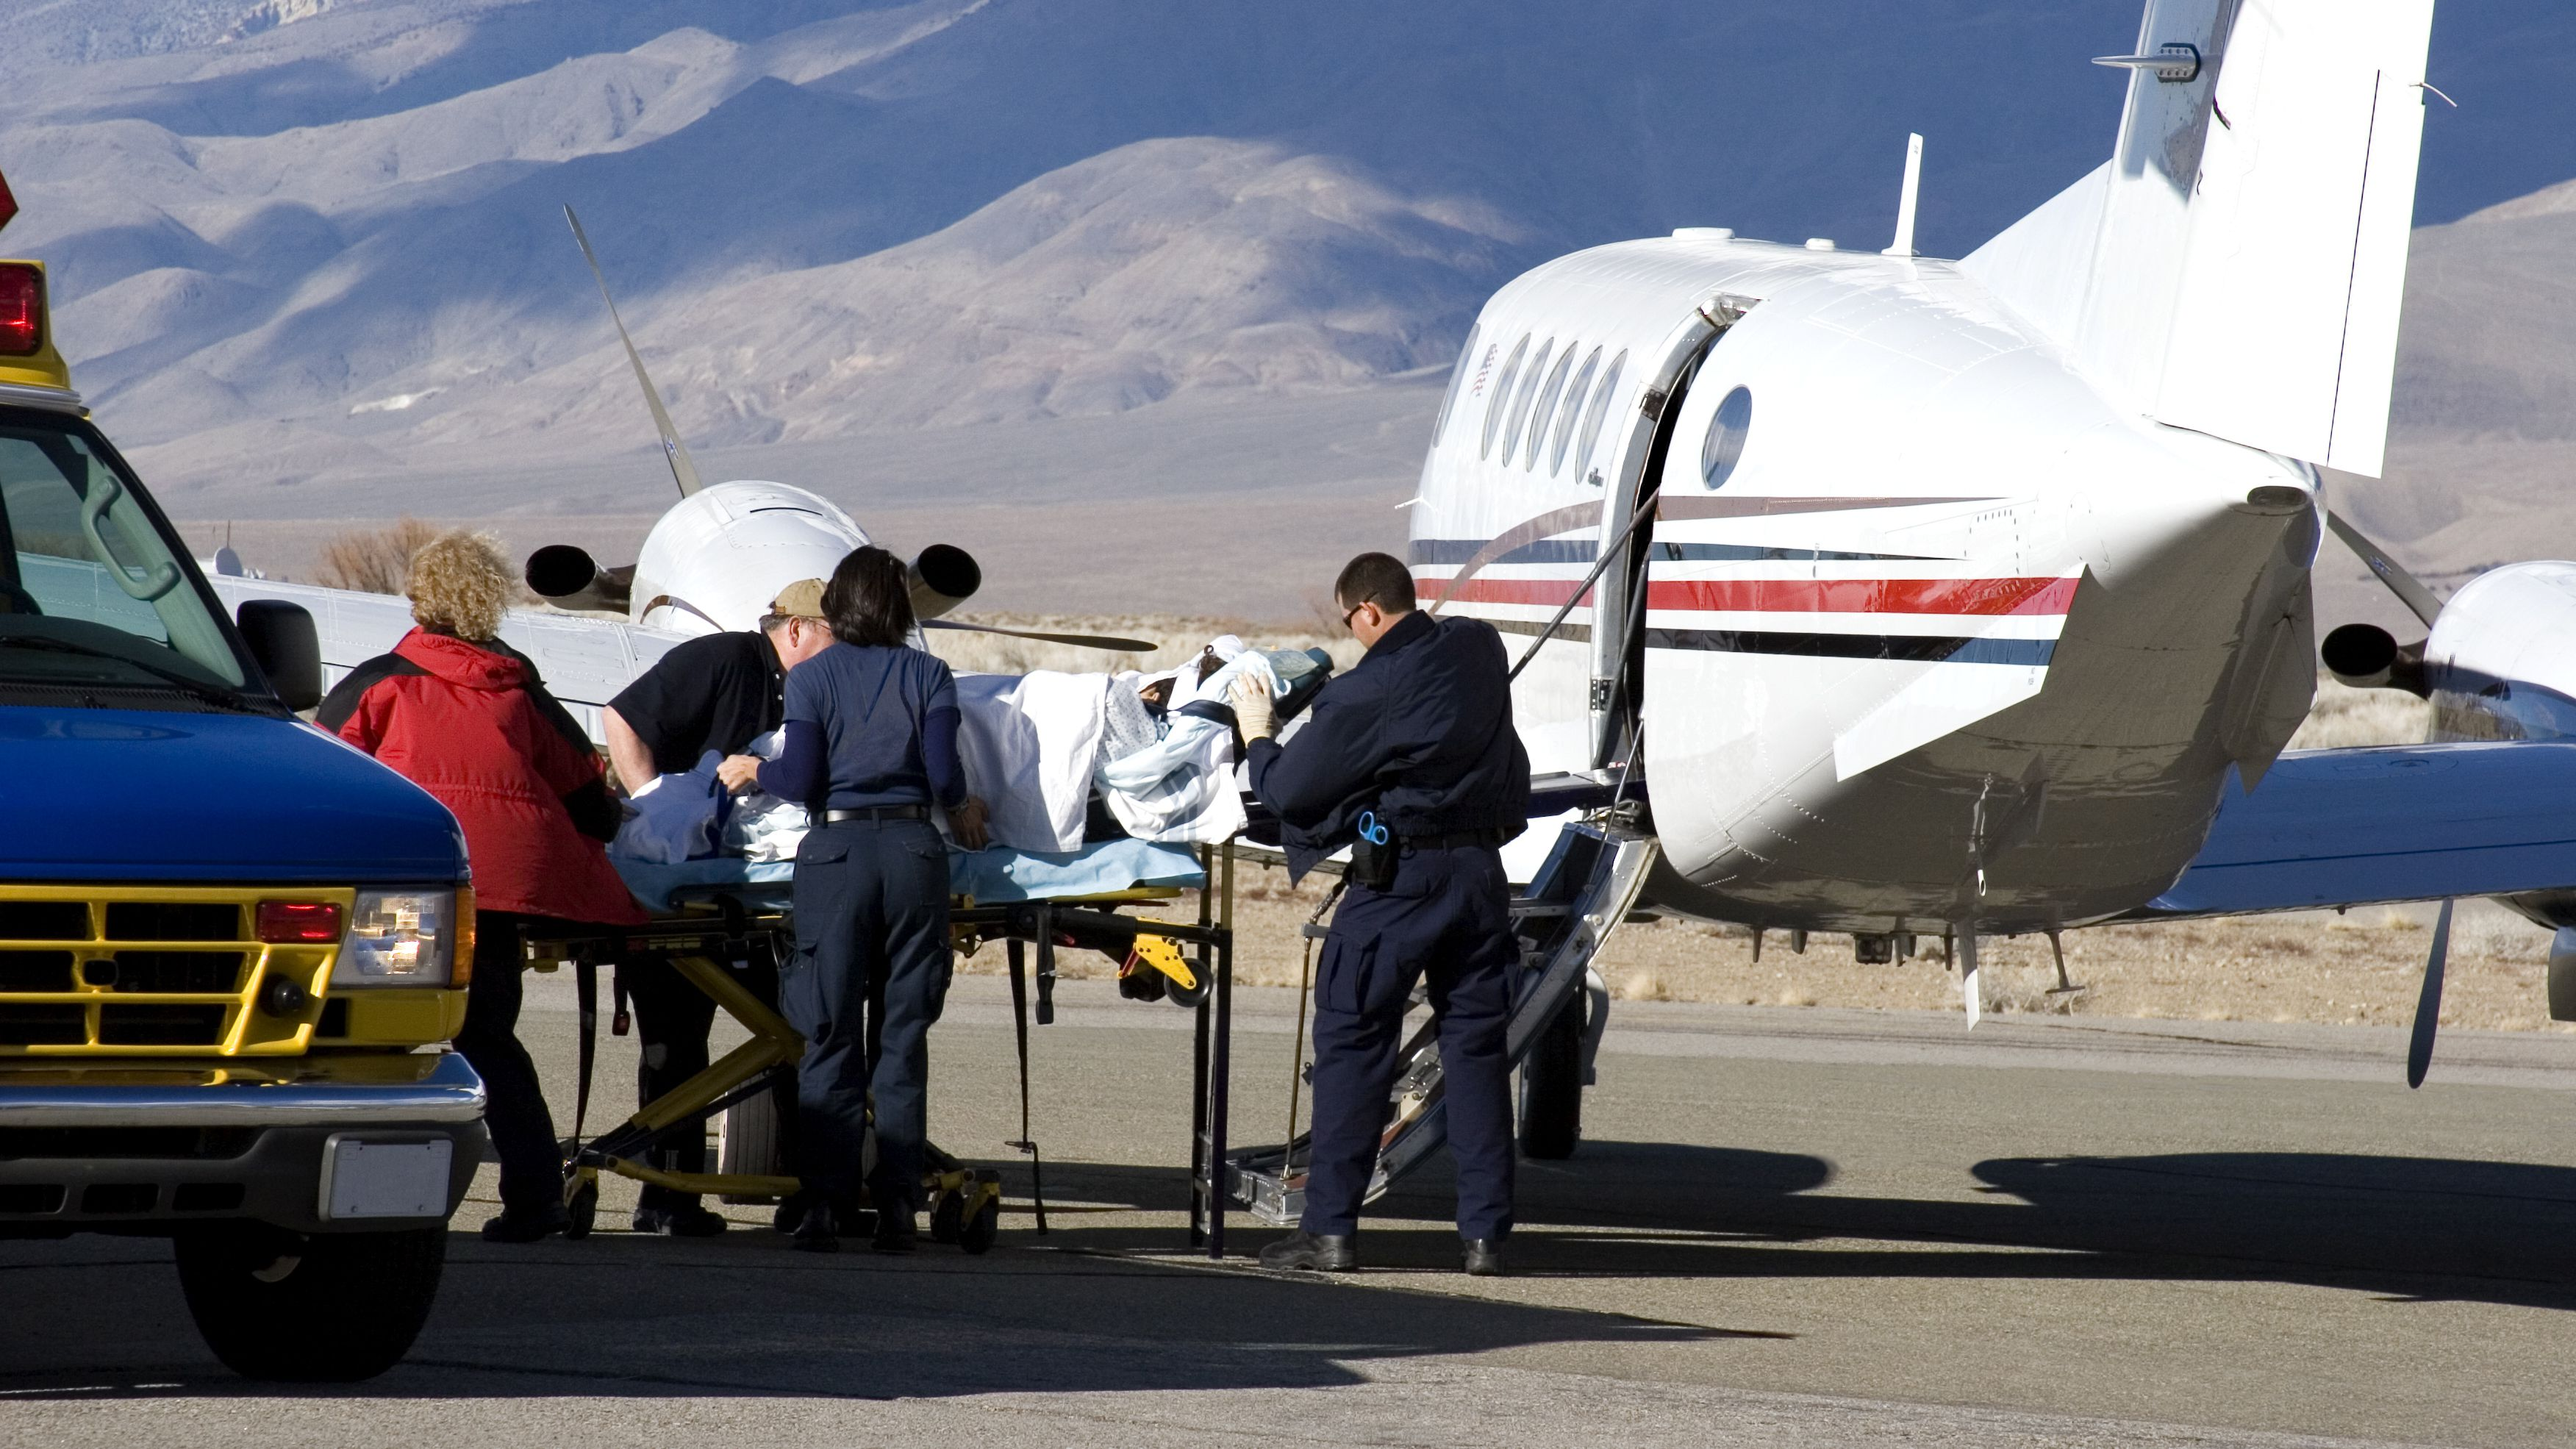 Air Ambulance Services - How Much Will Insurance Pay?